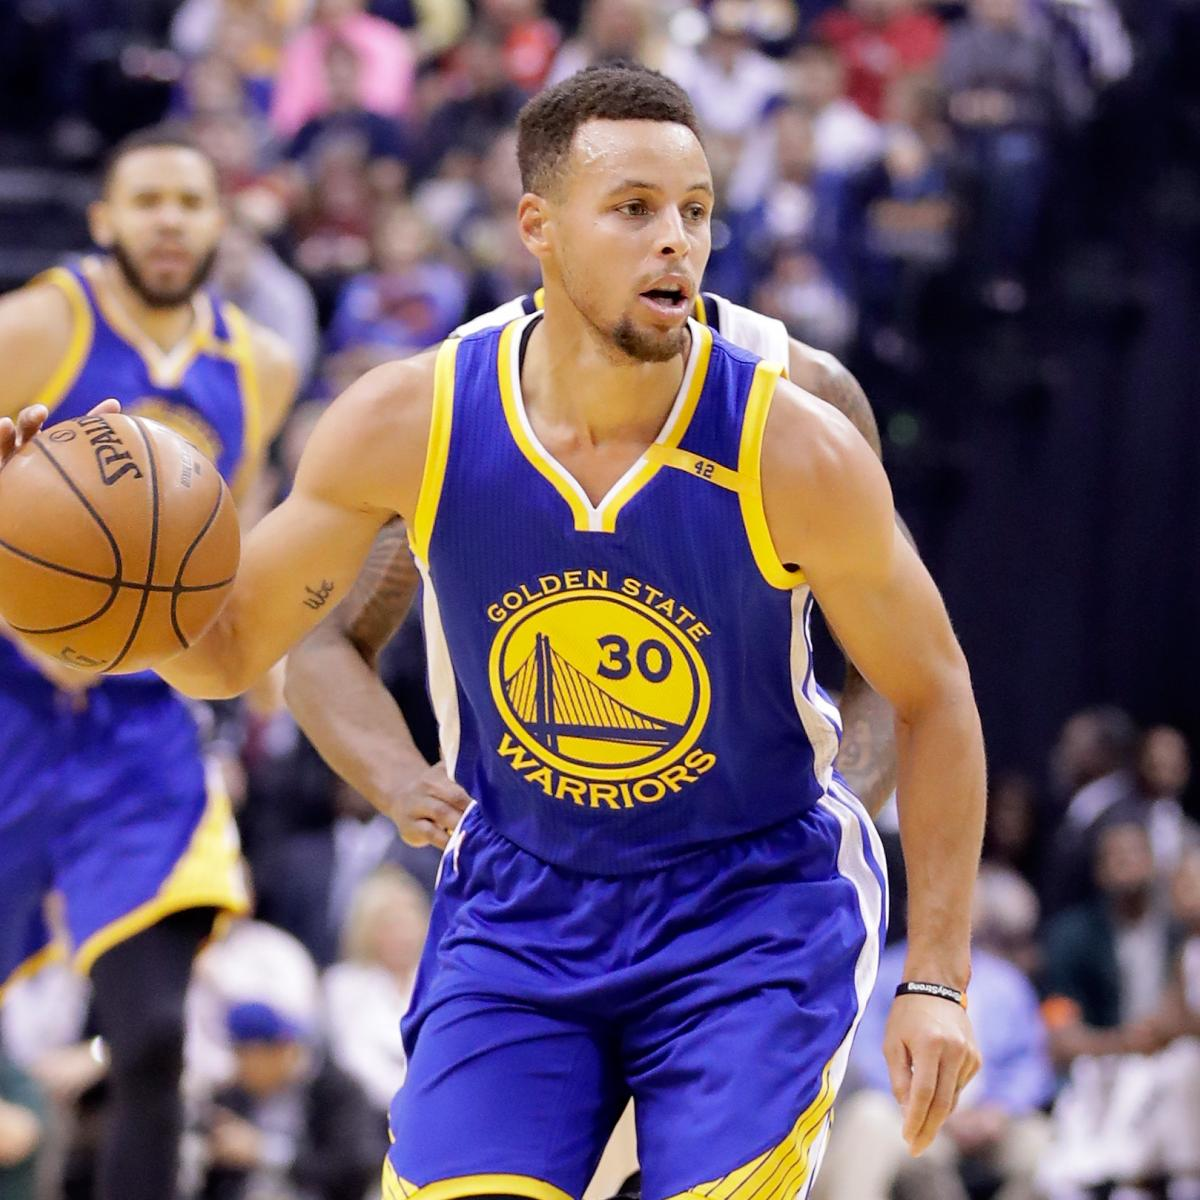 Warriors Come Out To Play Bleacher Report: L.A. Lakers Vs. Golden State Warriors: Live Score